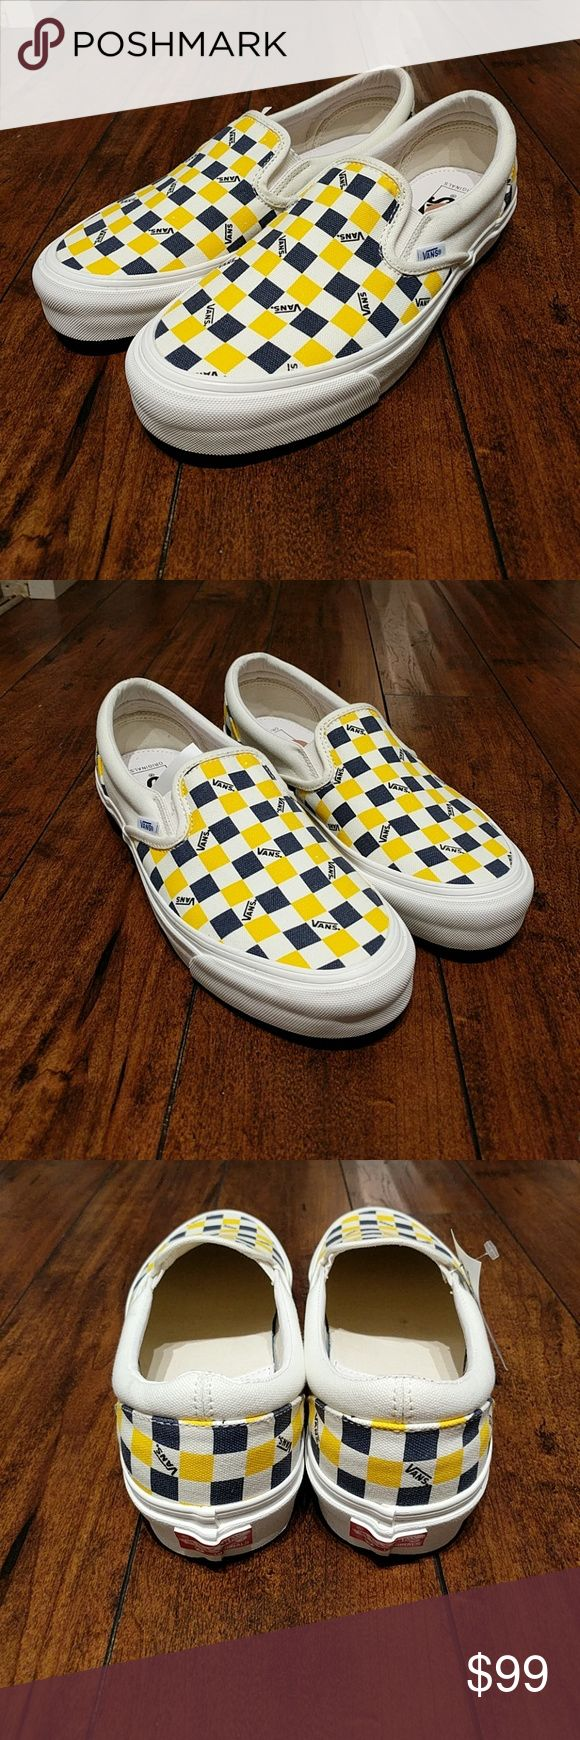 Vans Era Blue Yellow Checker Board Low Vans Era Blue Yellow Checker Board Low   100% Authentic and Brand New  No original box but will be shipped in one. Vans Shoes Sneakers